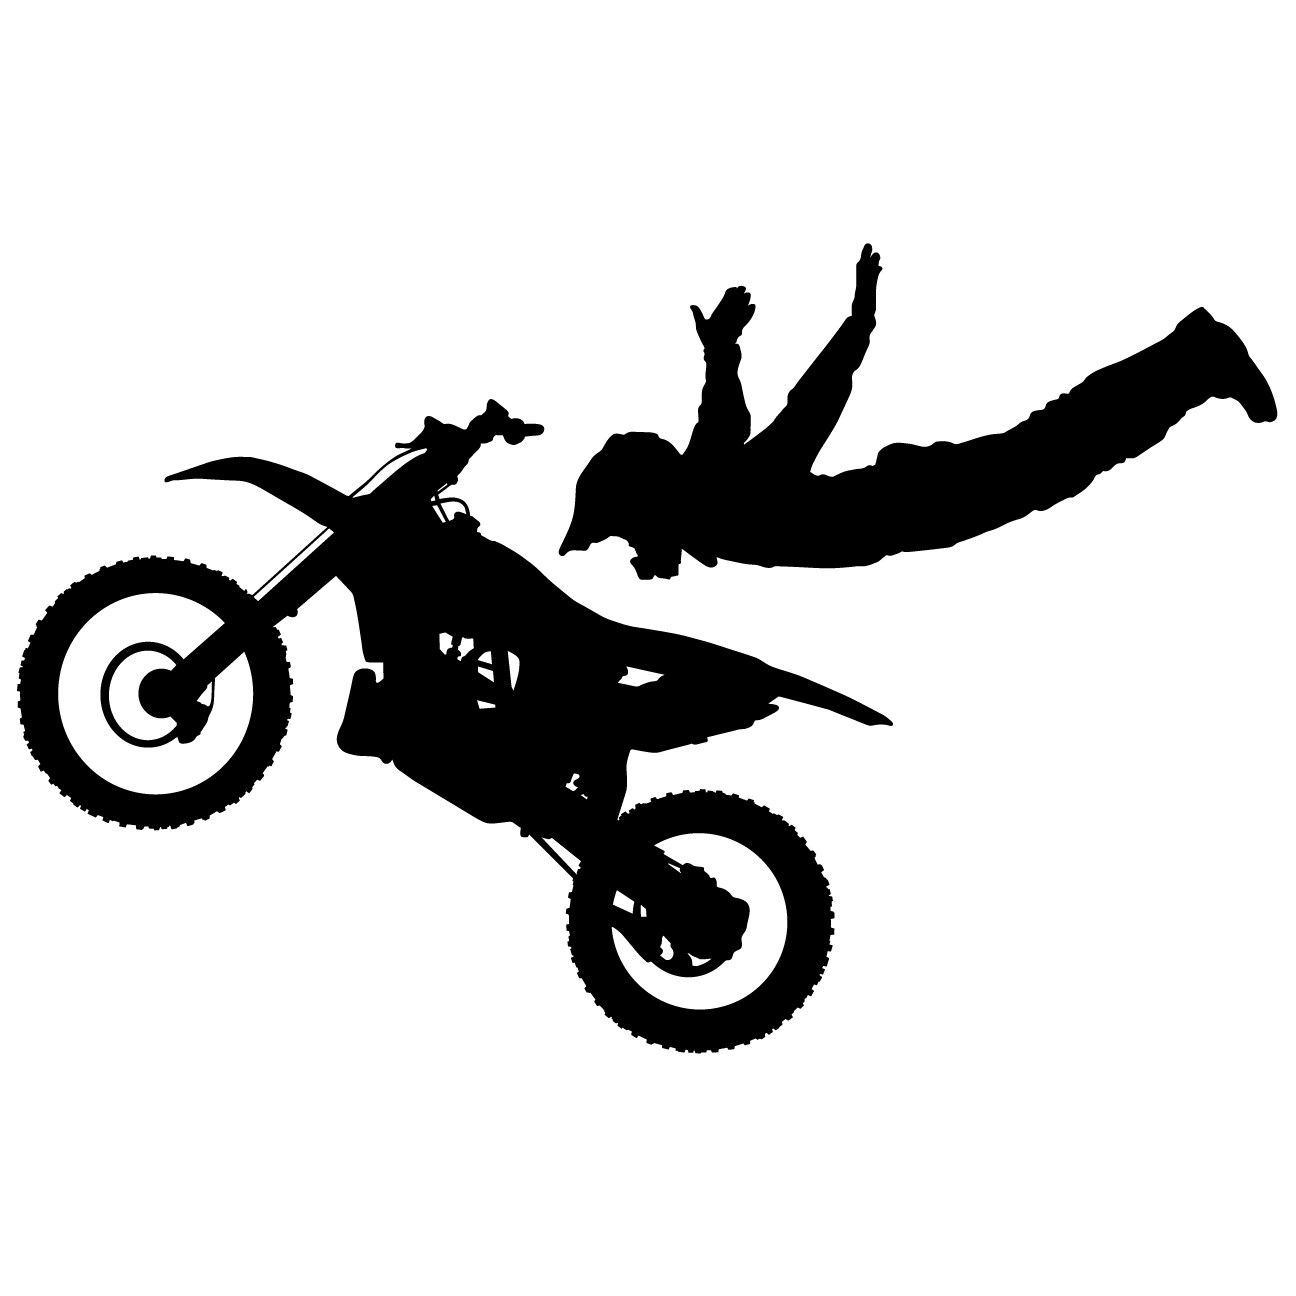 Motocross Wall Decal - Dirt Bike Sticker #00007 | Brapppp ...